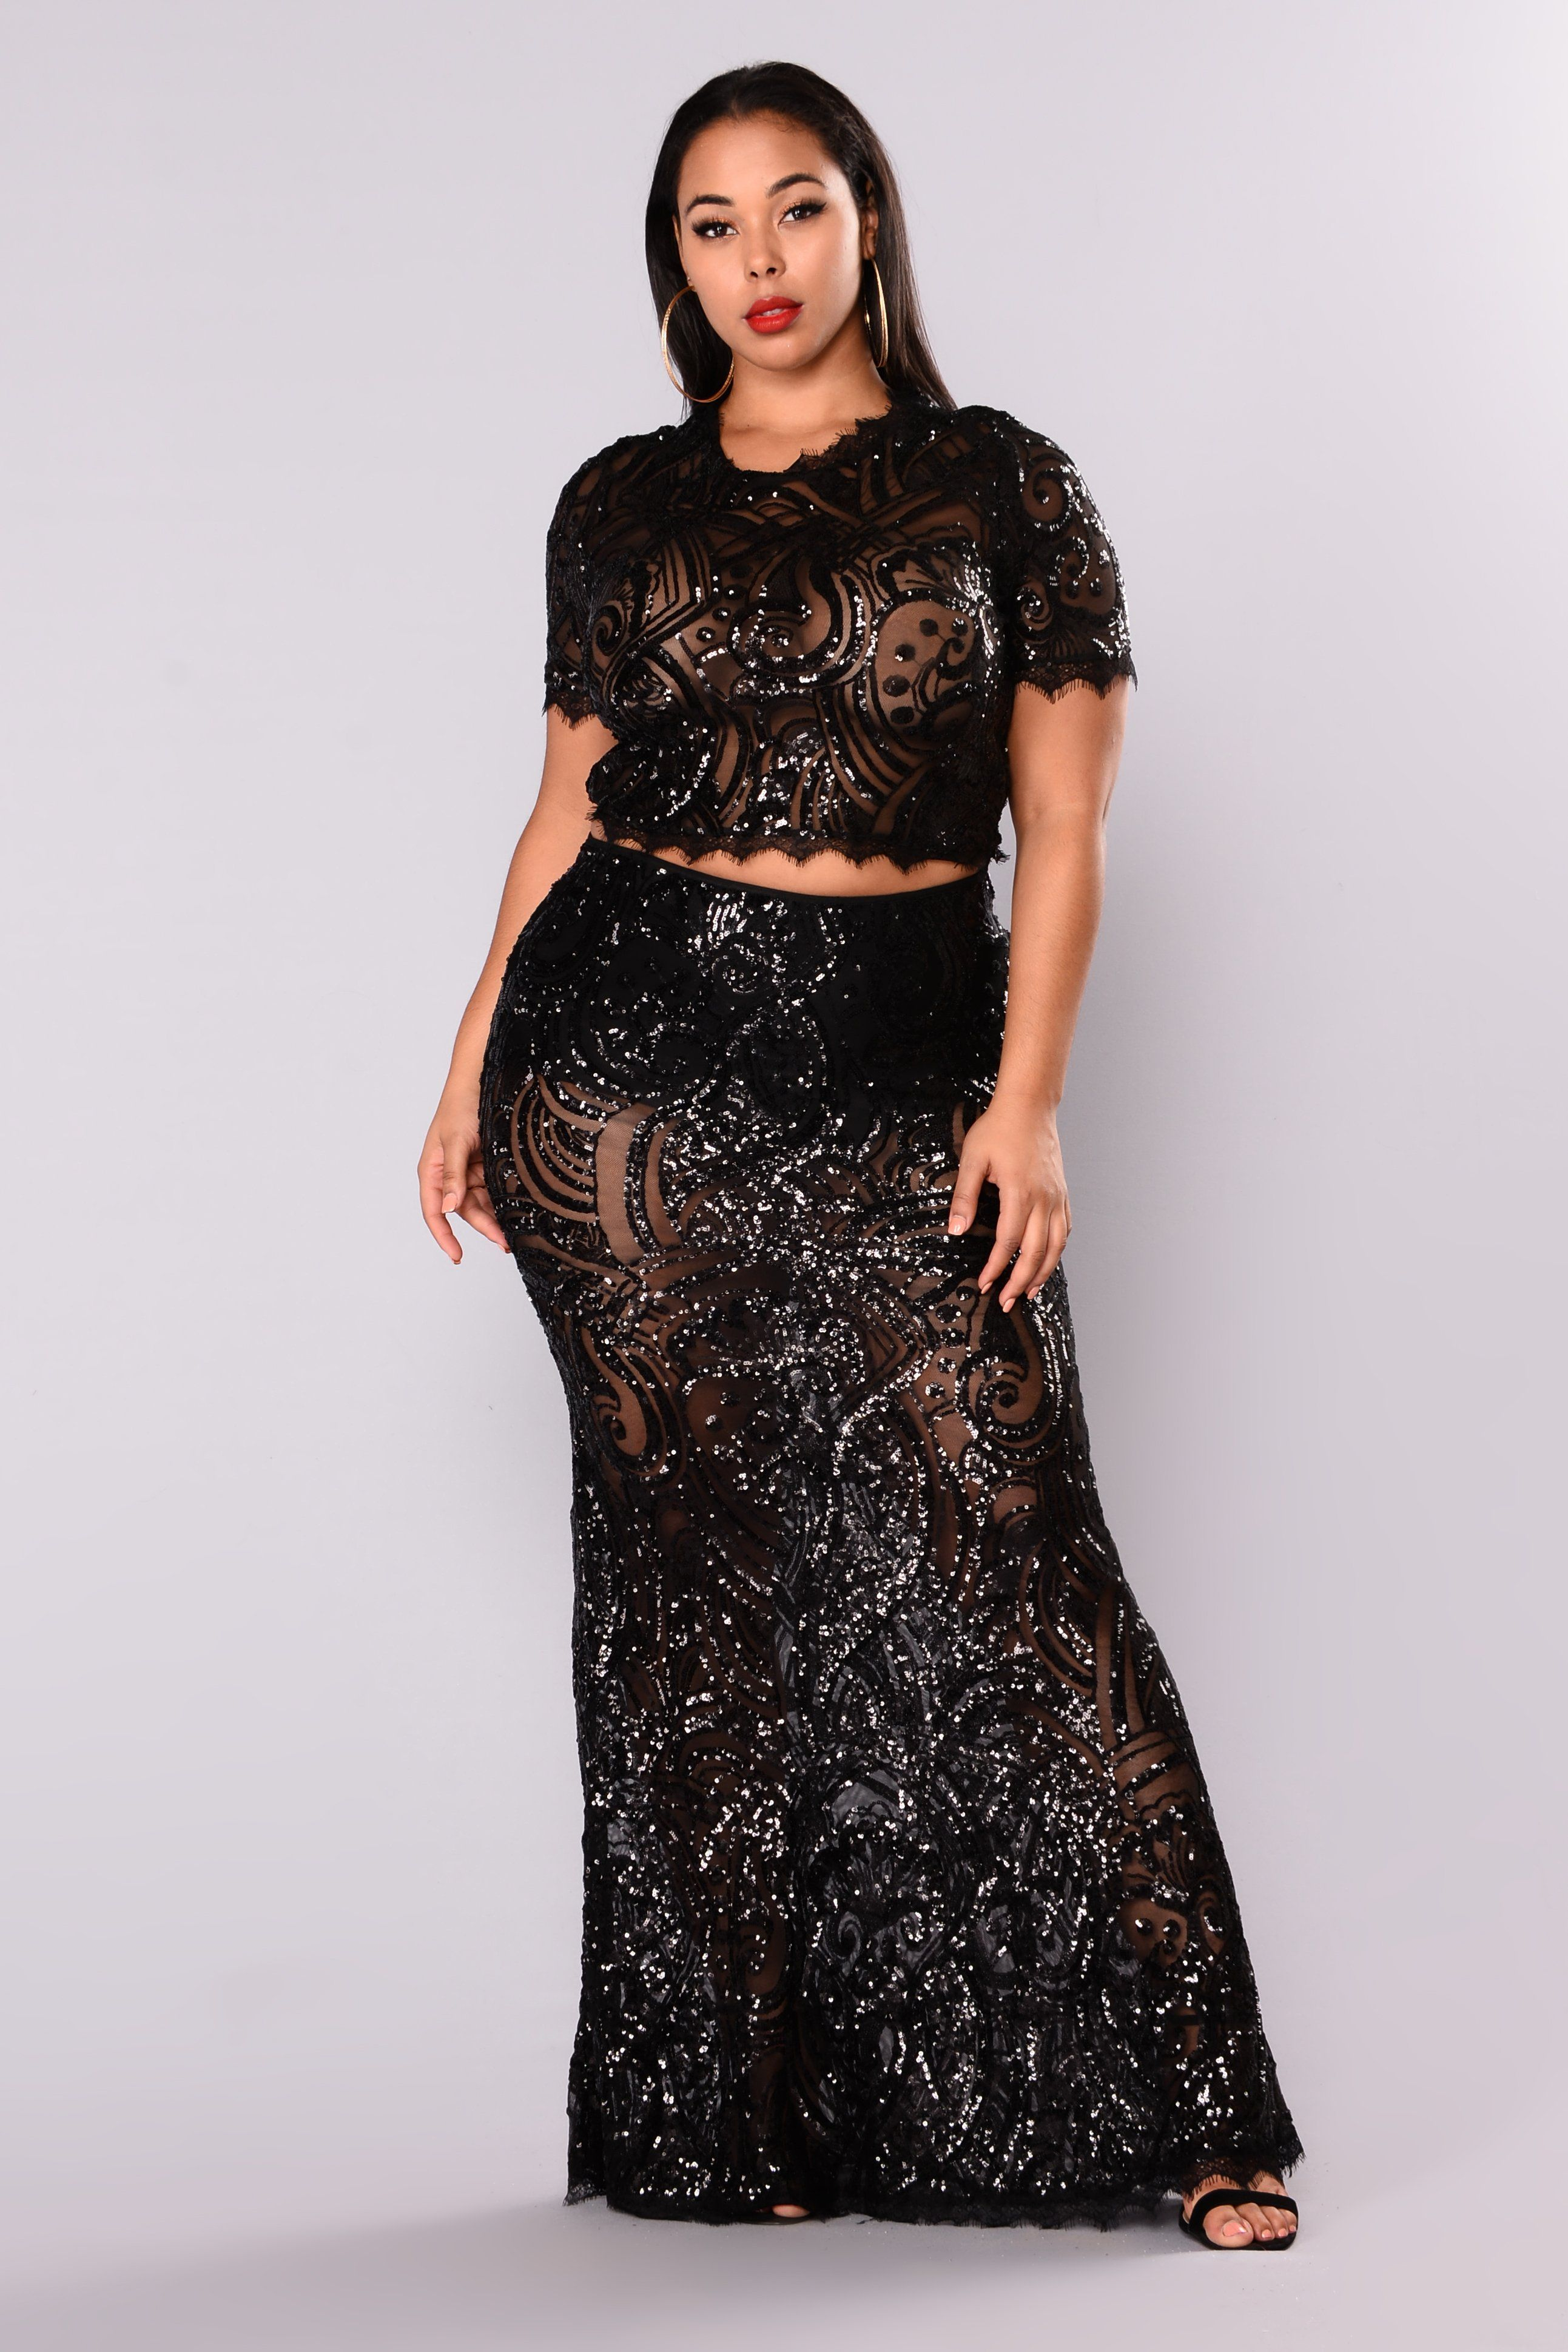 fd259dedd9 Available in Black 2 Piece Set Sequins Crop Tee Mermaid Maxi Skirt 95%  Polyester 5% Spandex